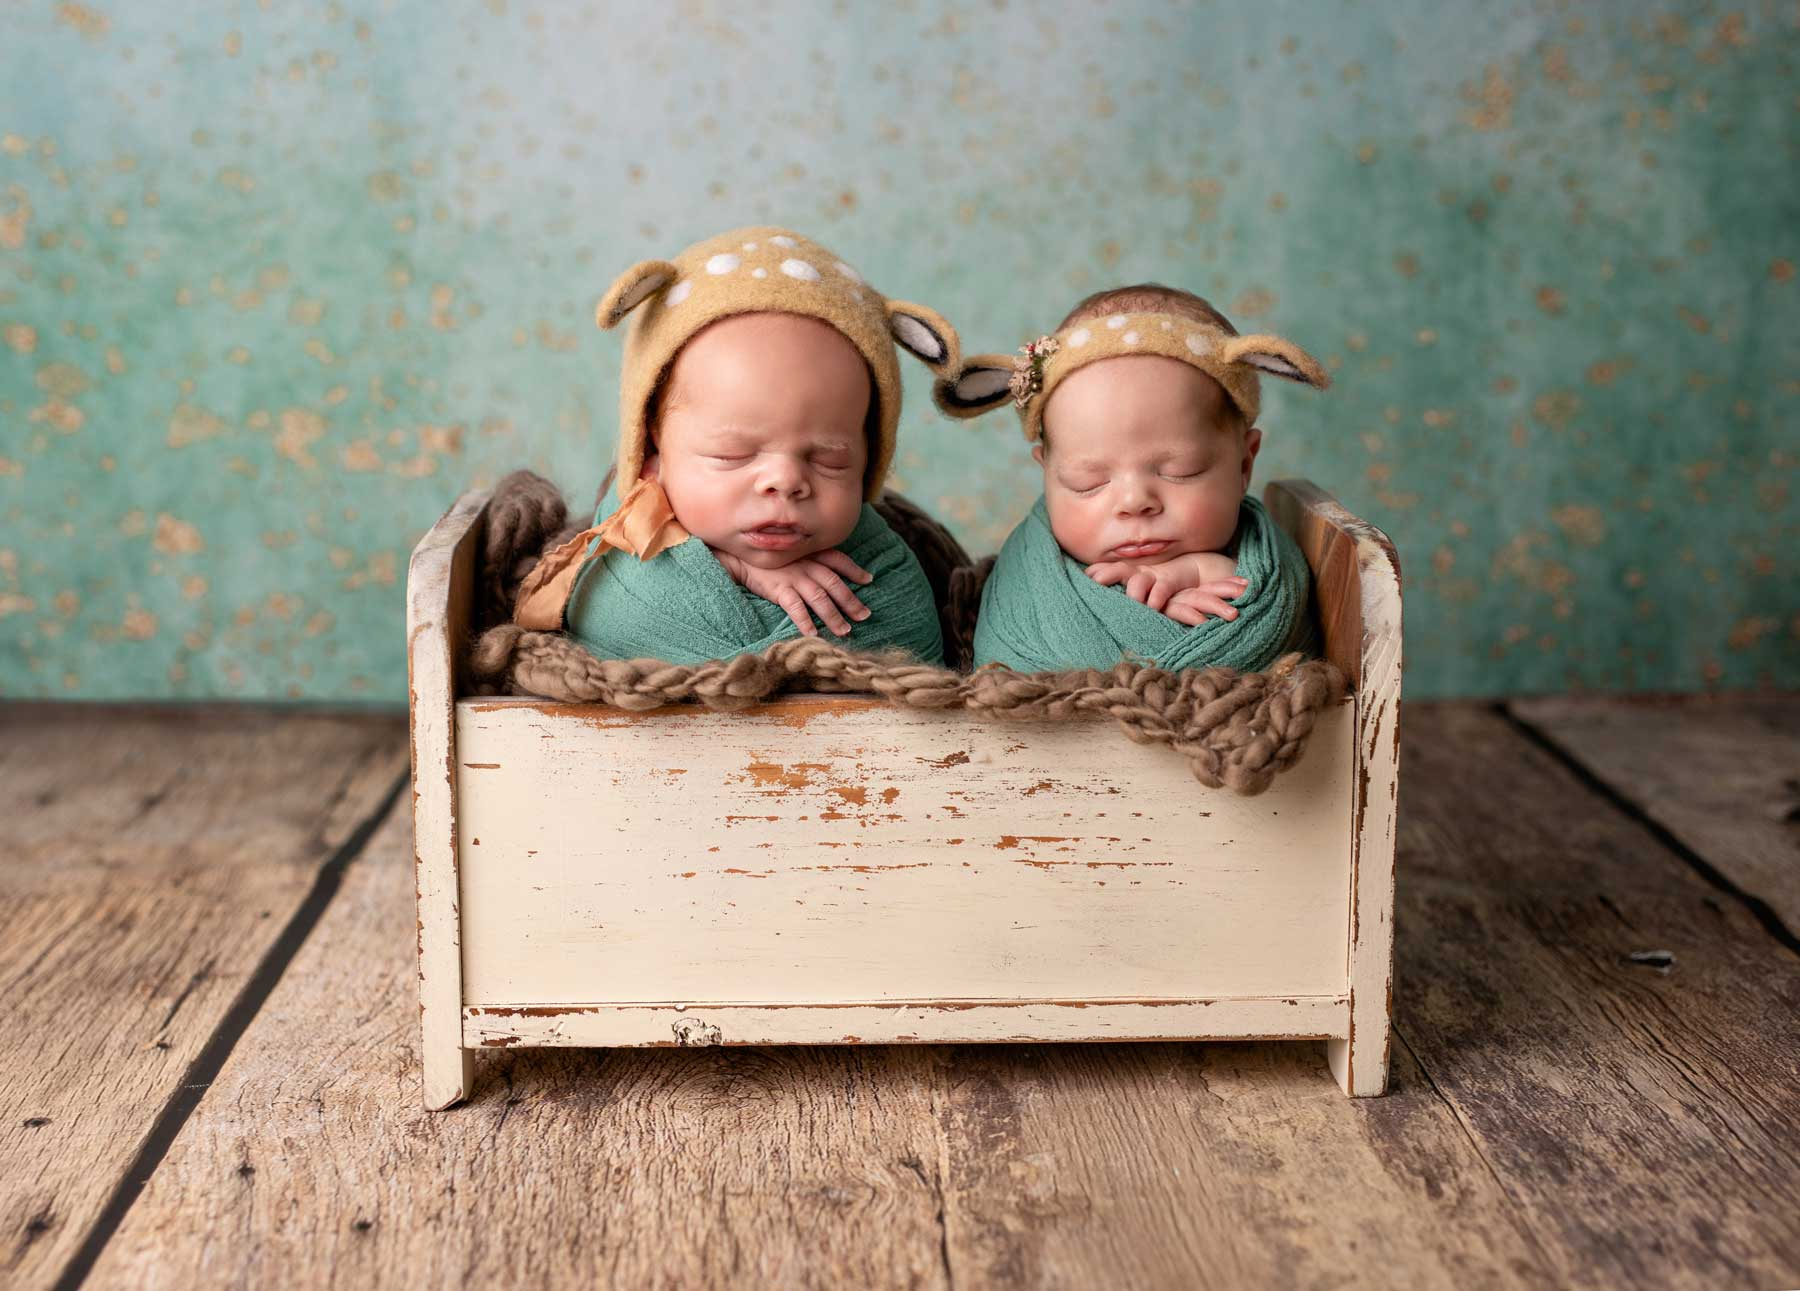 Baby twins are sitting next to each other with cute headbands during their session in Chicago photo studio